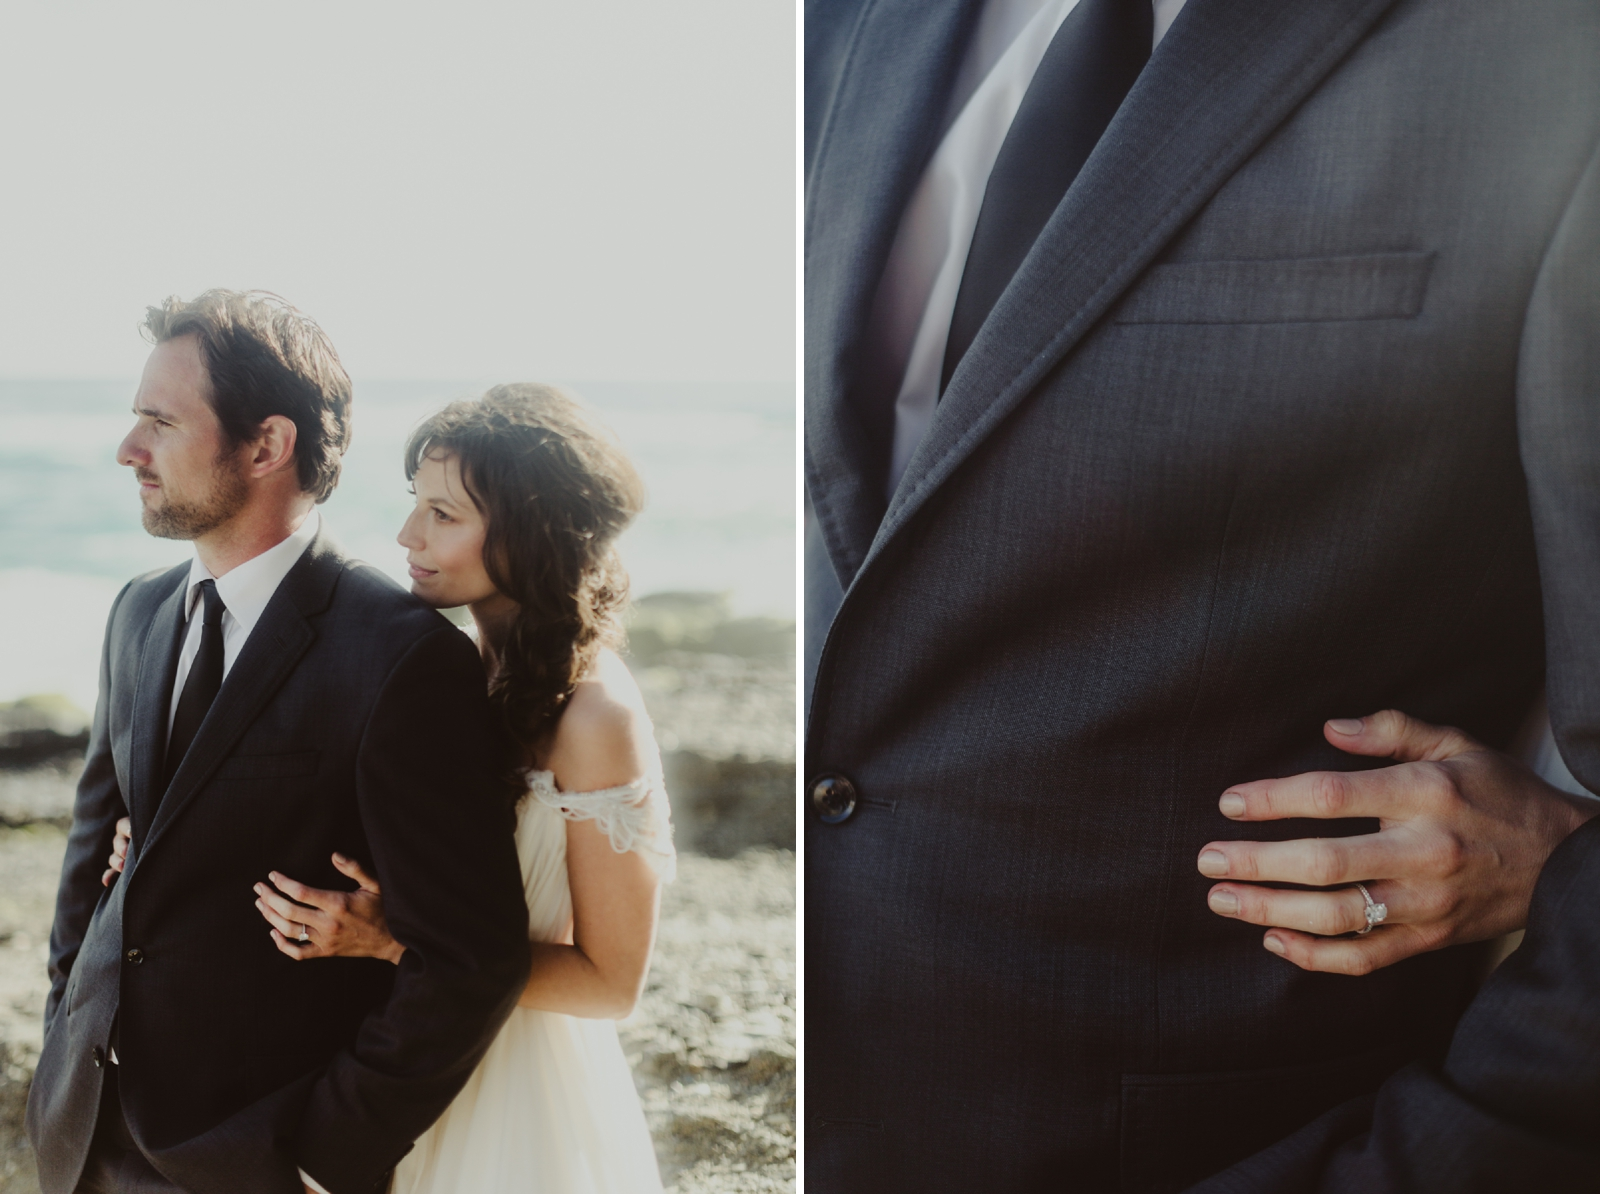 Kevin+Angie-Married-Blog-00026.jpg